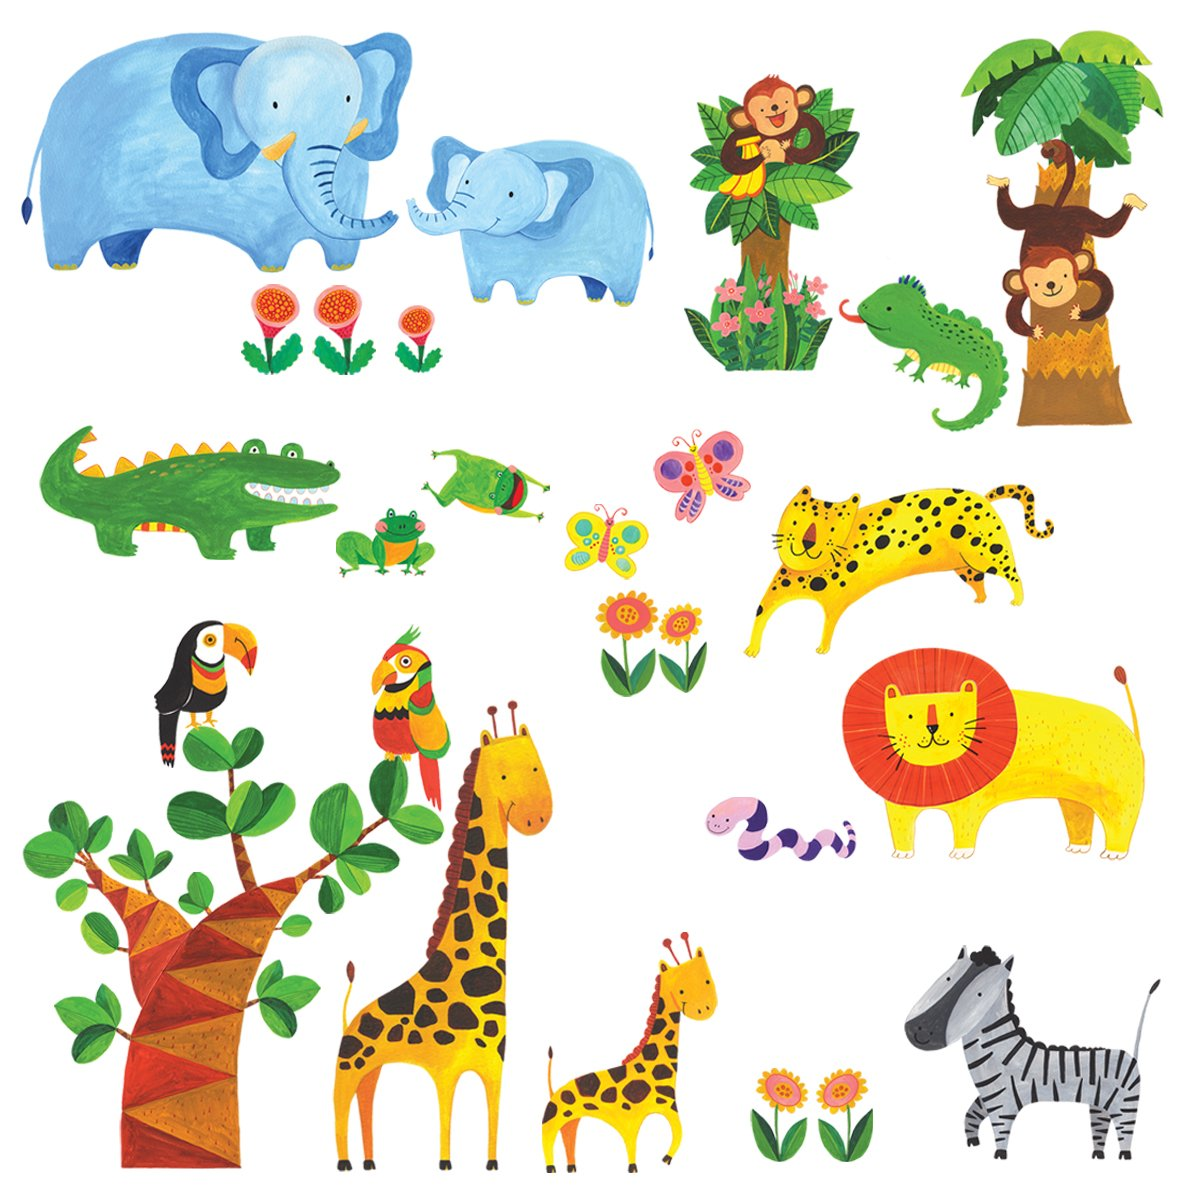 Decowall DM-1409 Tropical Jungle Kids Wall Stickers Wall Decals Peel and Stick Removable Wall Stickers for Kids Nursery Bedroom Living Room